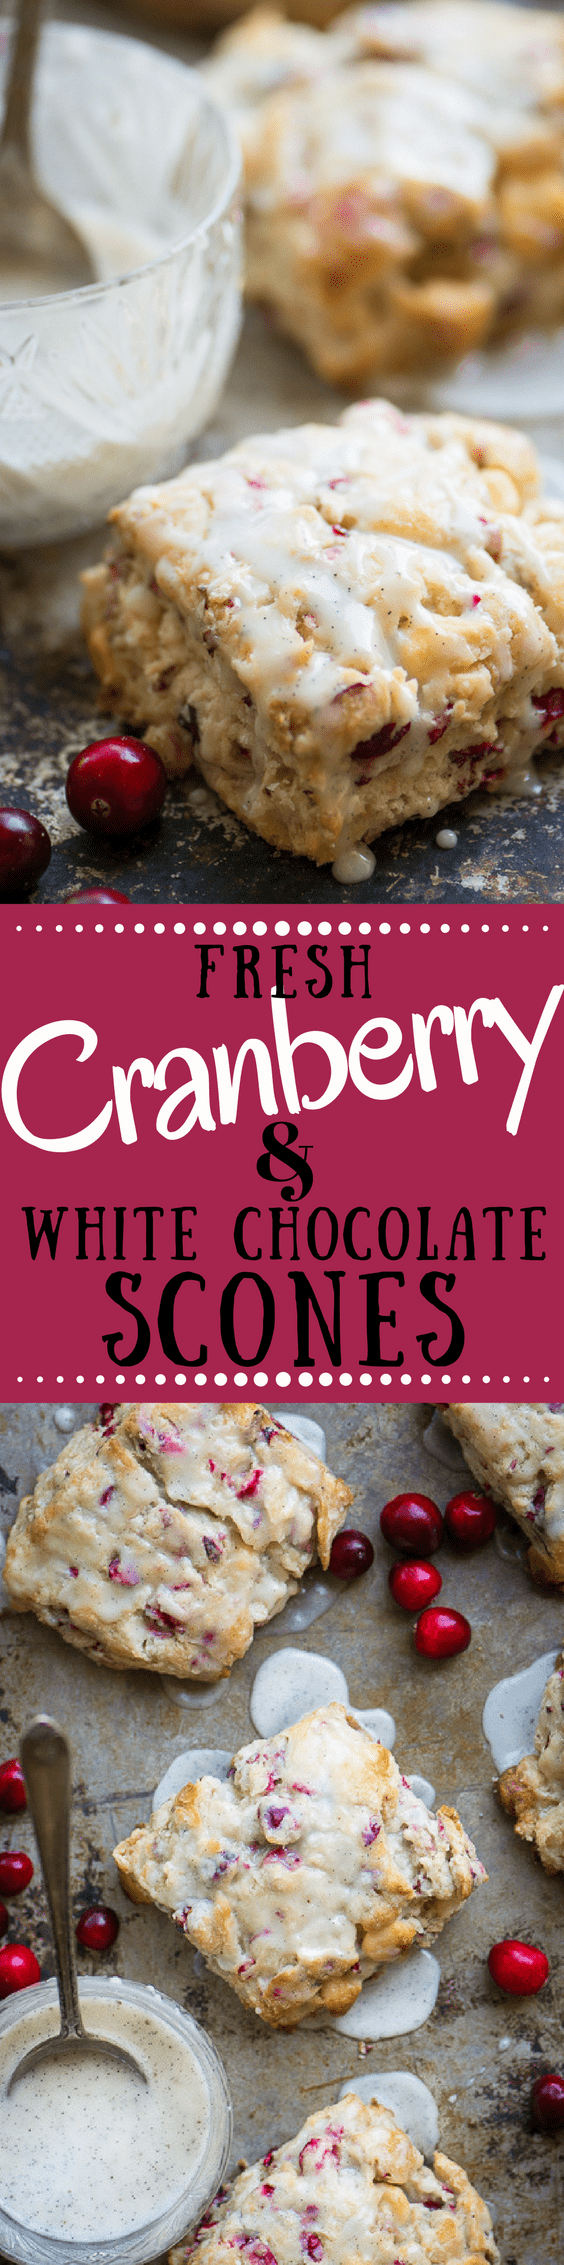 Chilly morning?  Cozy up with these Fresh Cranberry Scones ~ they're moist and flaky, loaded with lots of tart cranberries, and a touch of white chocolate ~ all topped with a vanilla bean glaze. #cranberries #scones #bestscones #breakfast #brunch #holidaybrunch #holidaybreakfast #holidayrecipe #whitechocolate